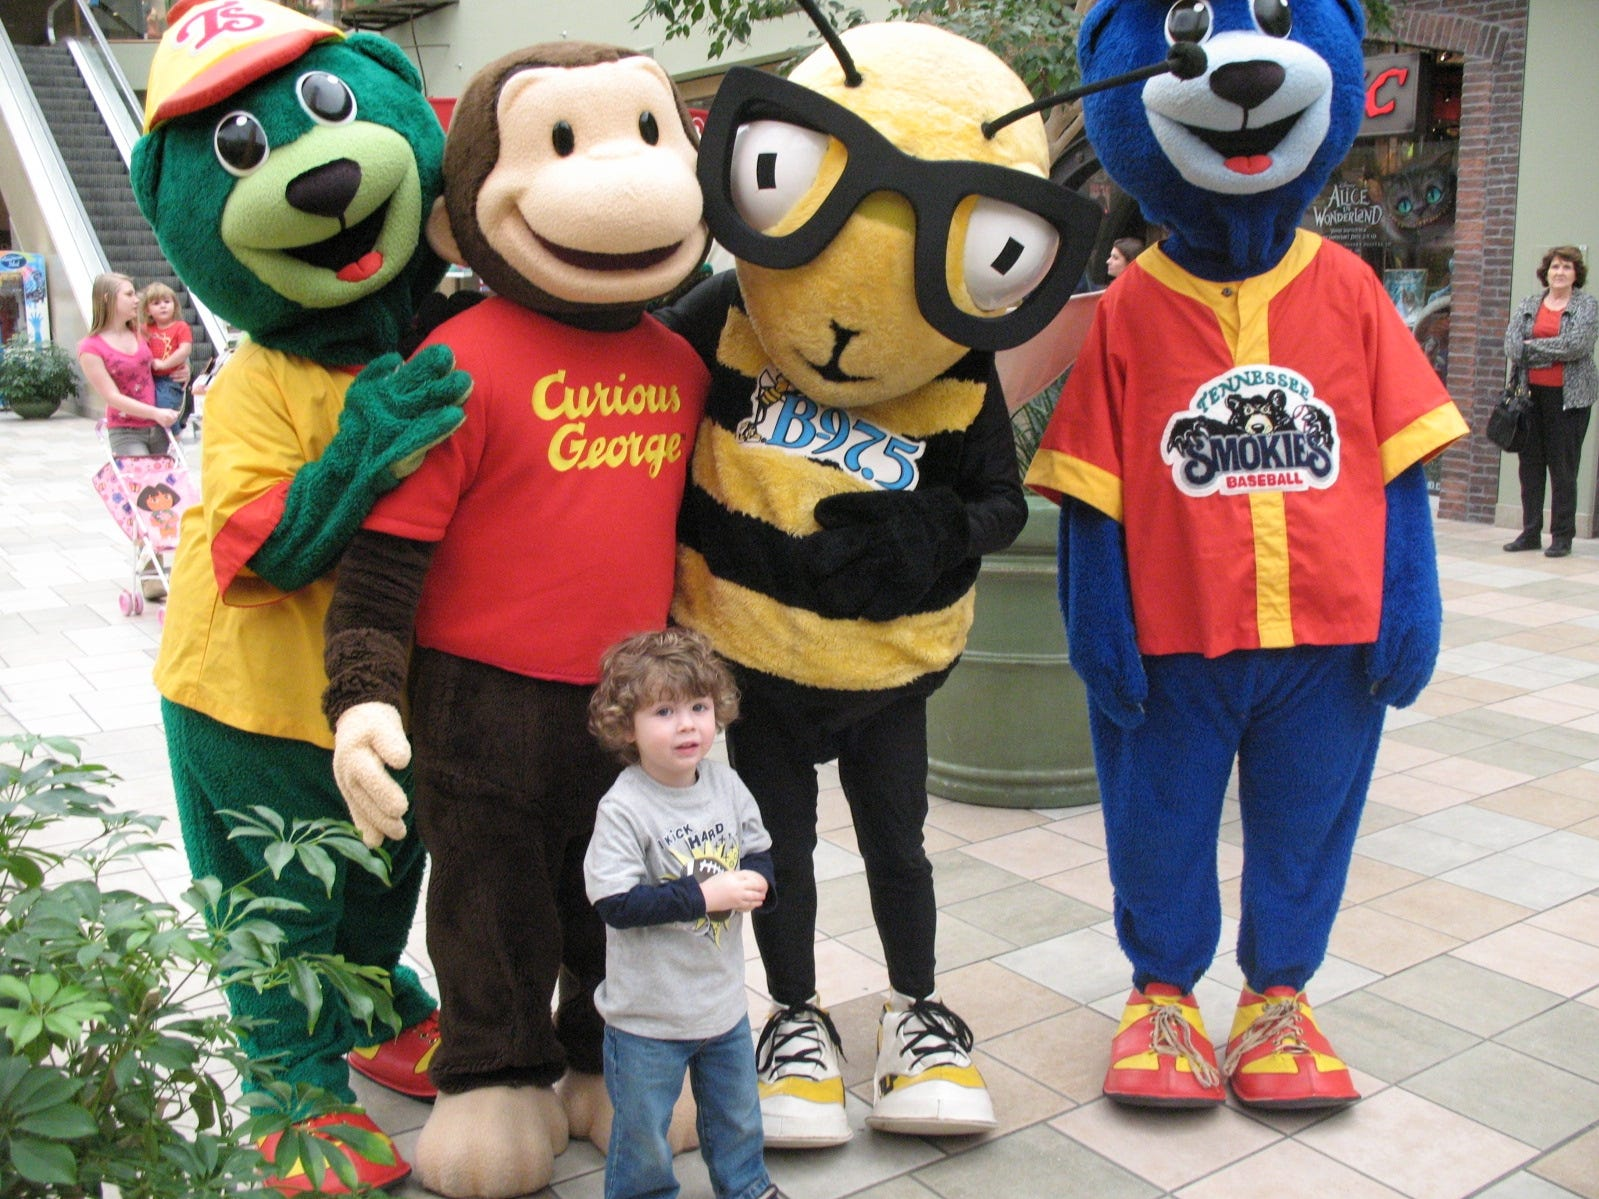 More than 75 children attended the Knoxville Center Mall's Book Blast event, which featured celebrity readers like Curious George and crafts. Several books were donated to East Tennessee Children's Hospital. Daniel Unthank, 2, visits Curious George, Bee 97.5 Bee and Slugger & Diamond.